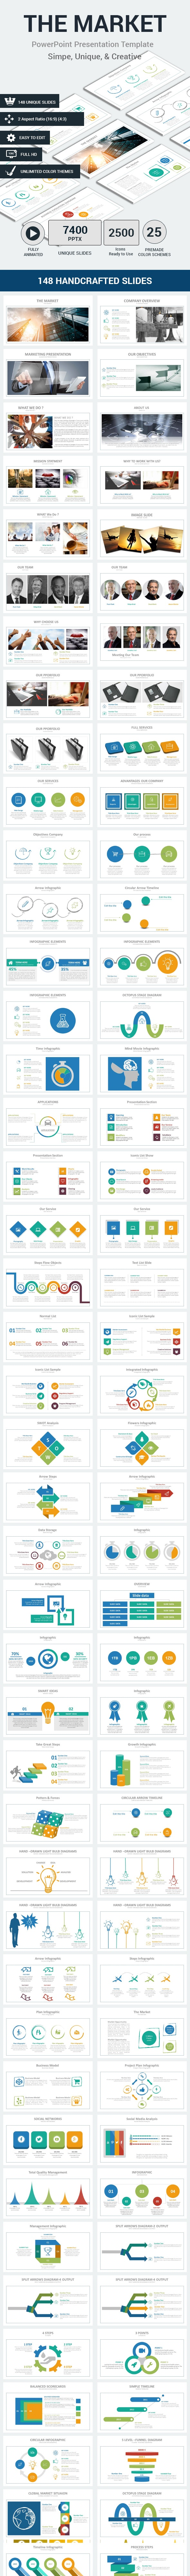 The Market PowerPoint Presentation Template - Business PowerPoint Templates